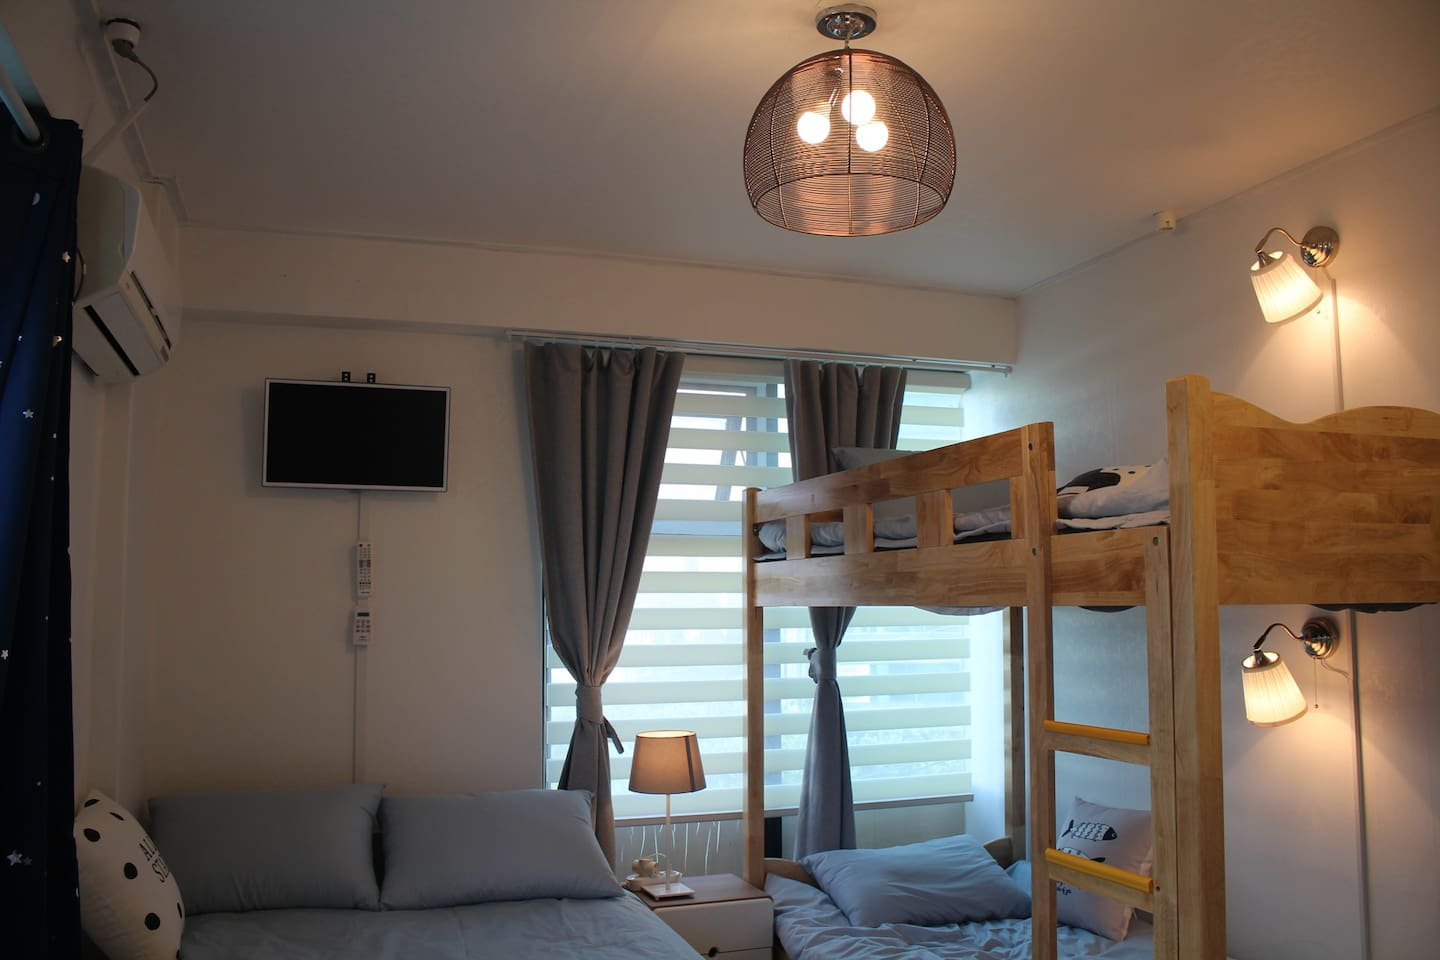 #503 is full equipped one doublesize and one bunkbed room / 503호는 모든시설이 갖춰진 더블베드 1개, 이층침대 1개 방입니다